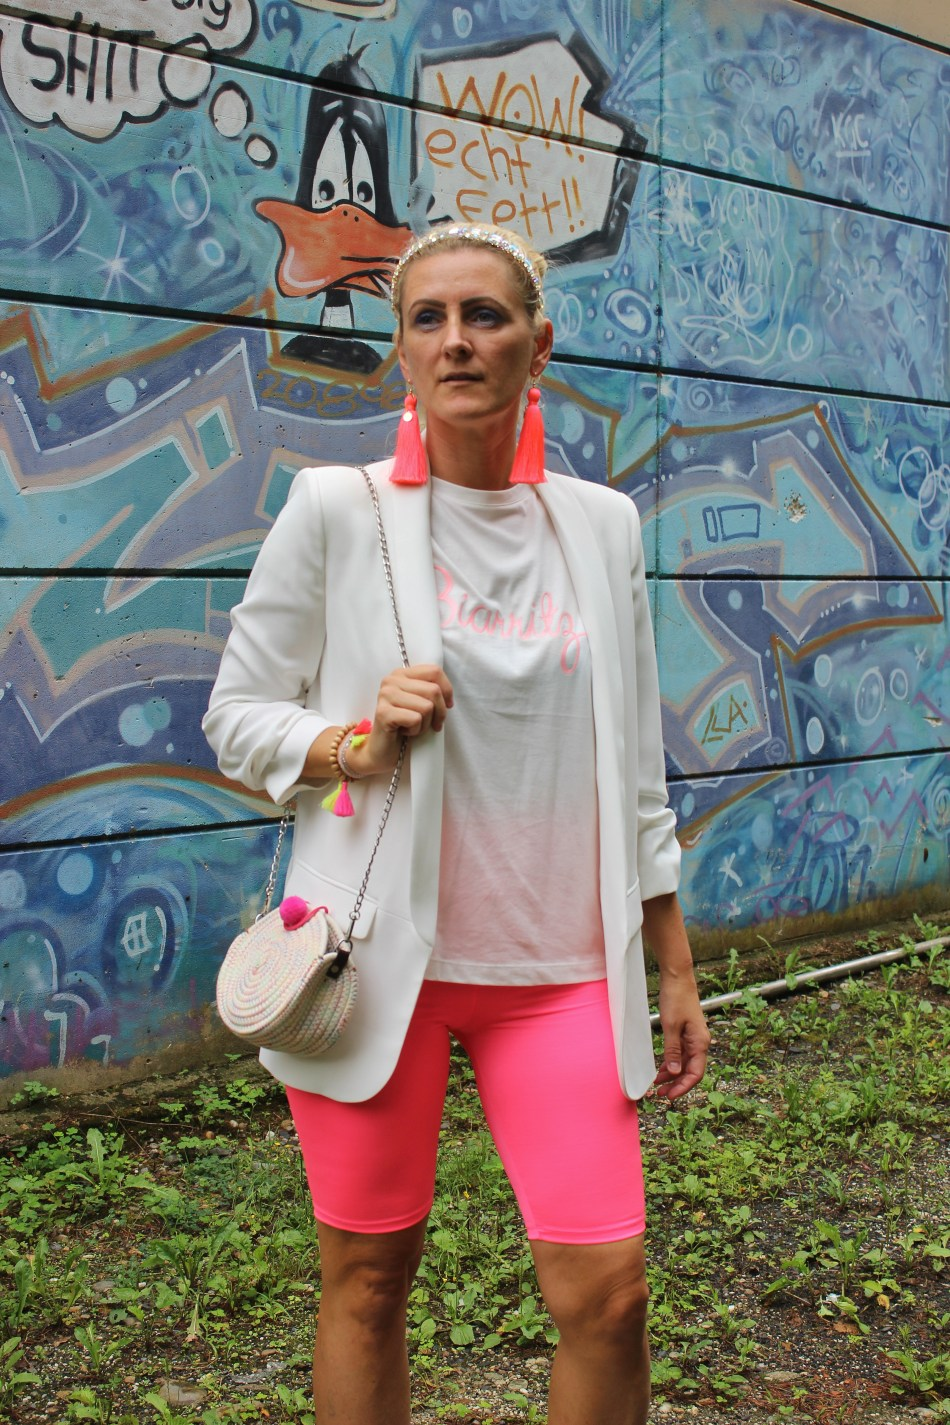 Neon-Radlerhose-Bikerpants-carrieslifestyle-Superga-Platforms-White-Blazer-Pompoms-carrieslifestyle-Tamara-Prutsch